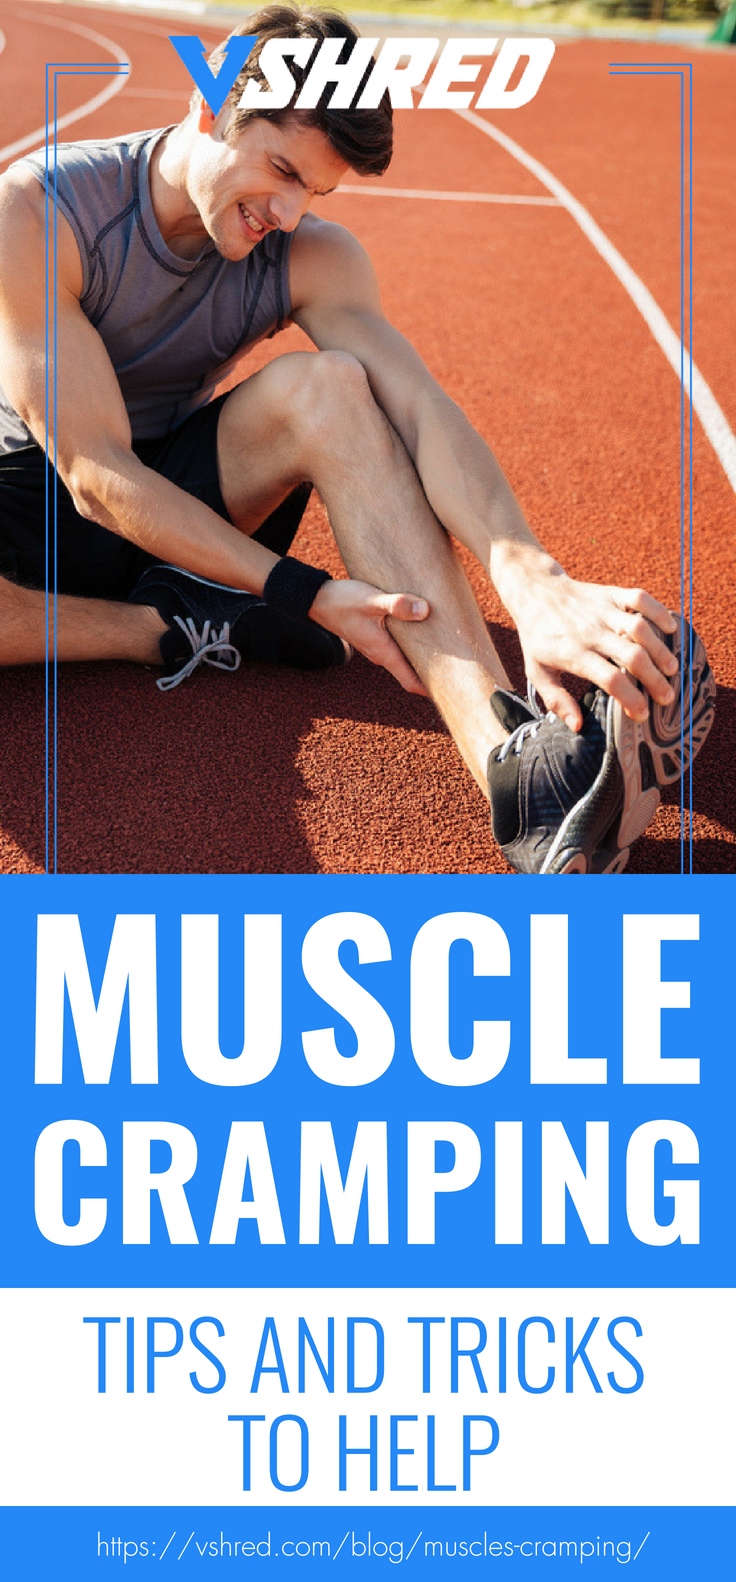 Muscles Cramping? Tips And Tricks To Help